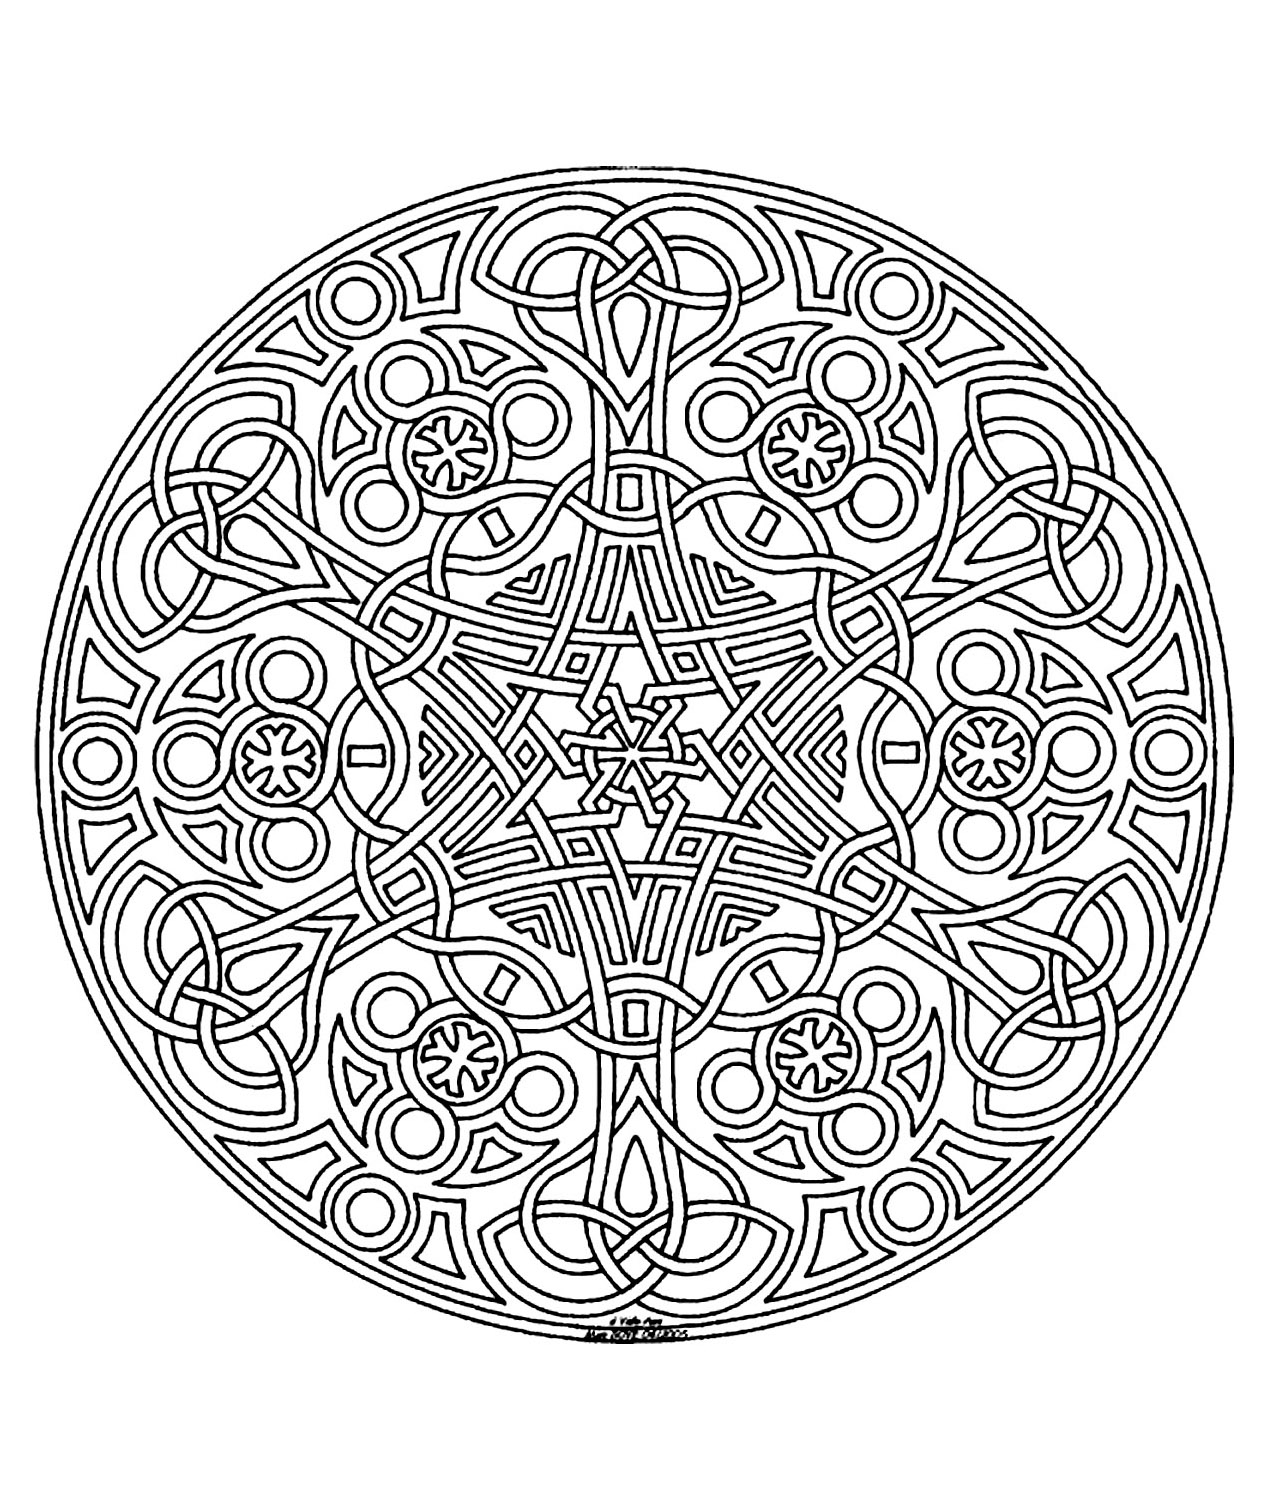 mandalas to color for adults free mandala for to print 14 malas adult coloring for to mandalas adults color